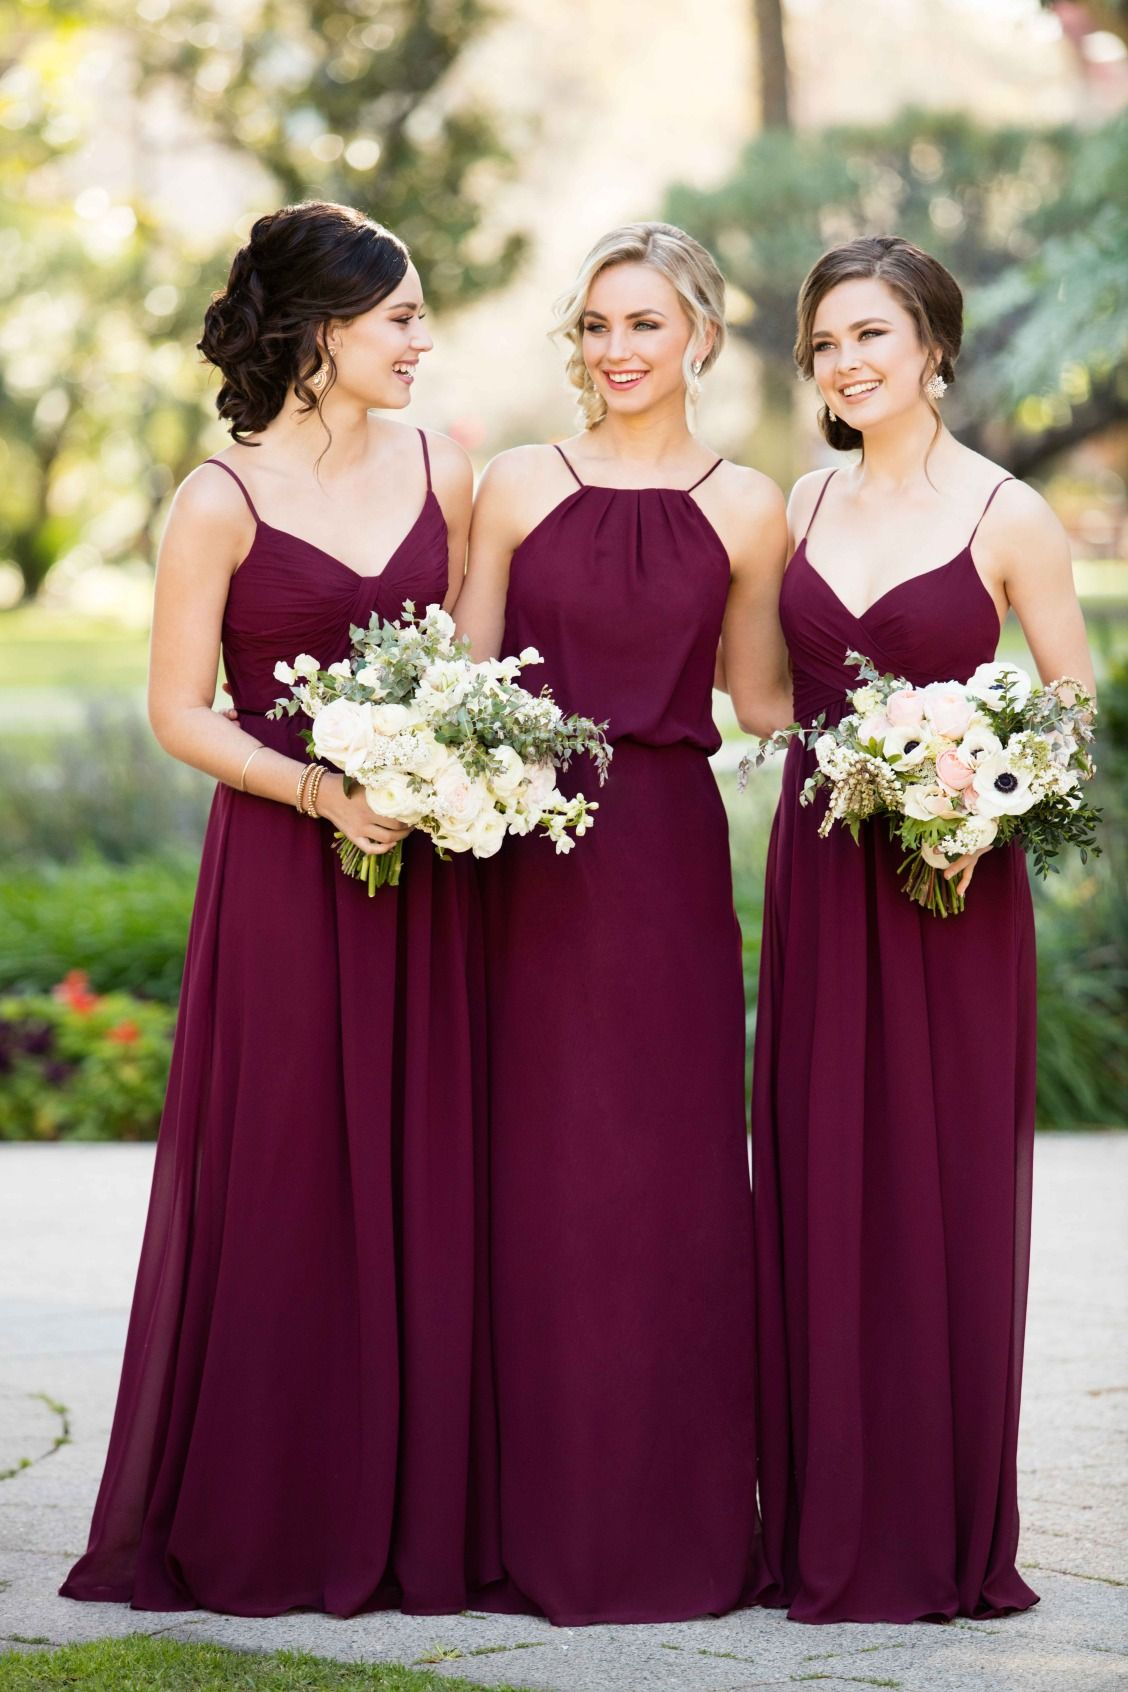 Burgundy Bridesmaids Dress For A Mix And Match Bridal Party